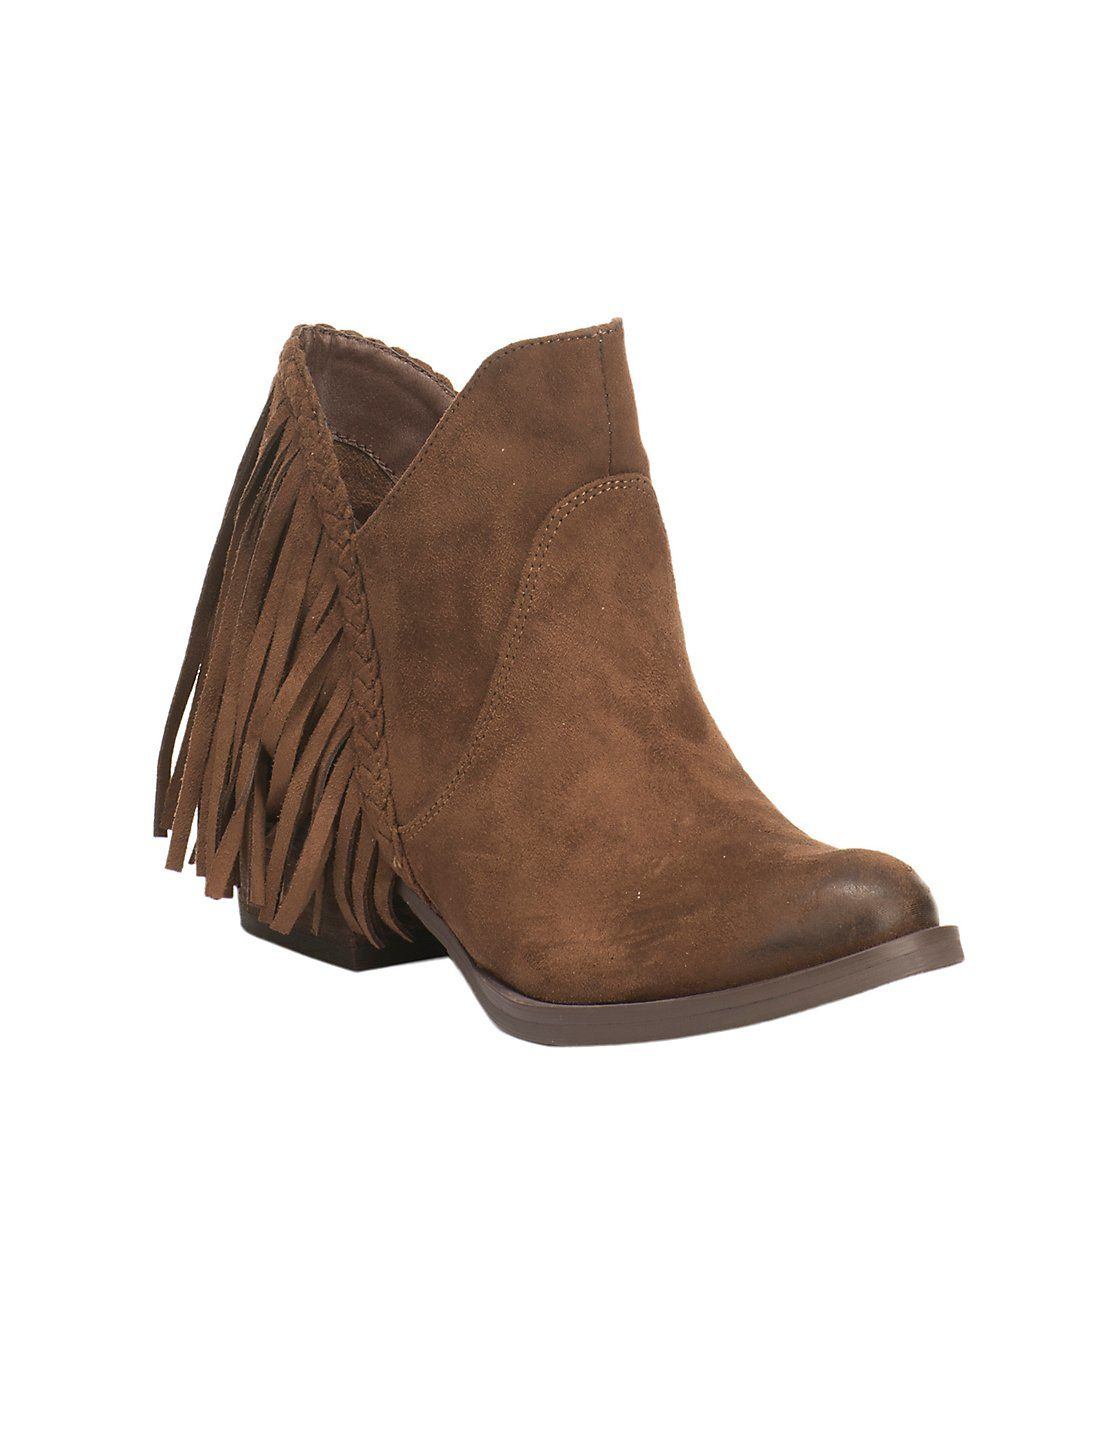 Not Rated Women S Tan Microfiber With Fringe Round Toe Bootie Cavender S Boots Women Fashion Boots Womens Boots